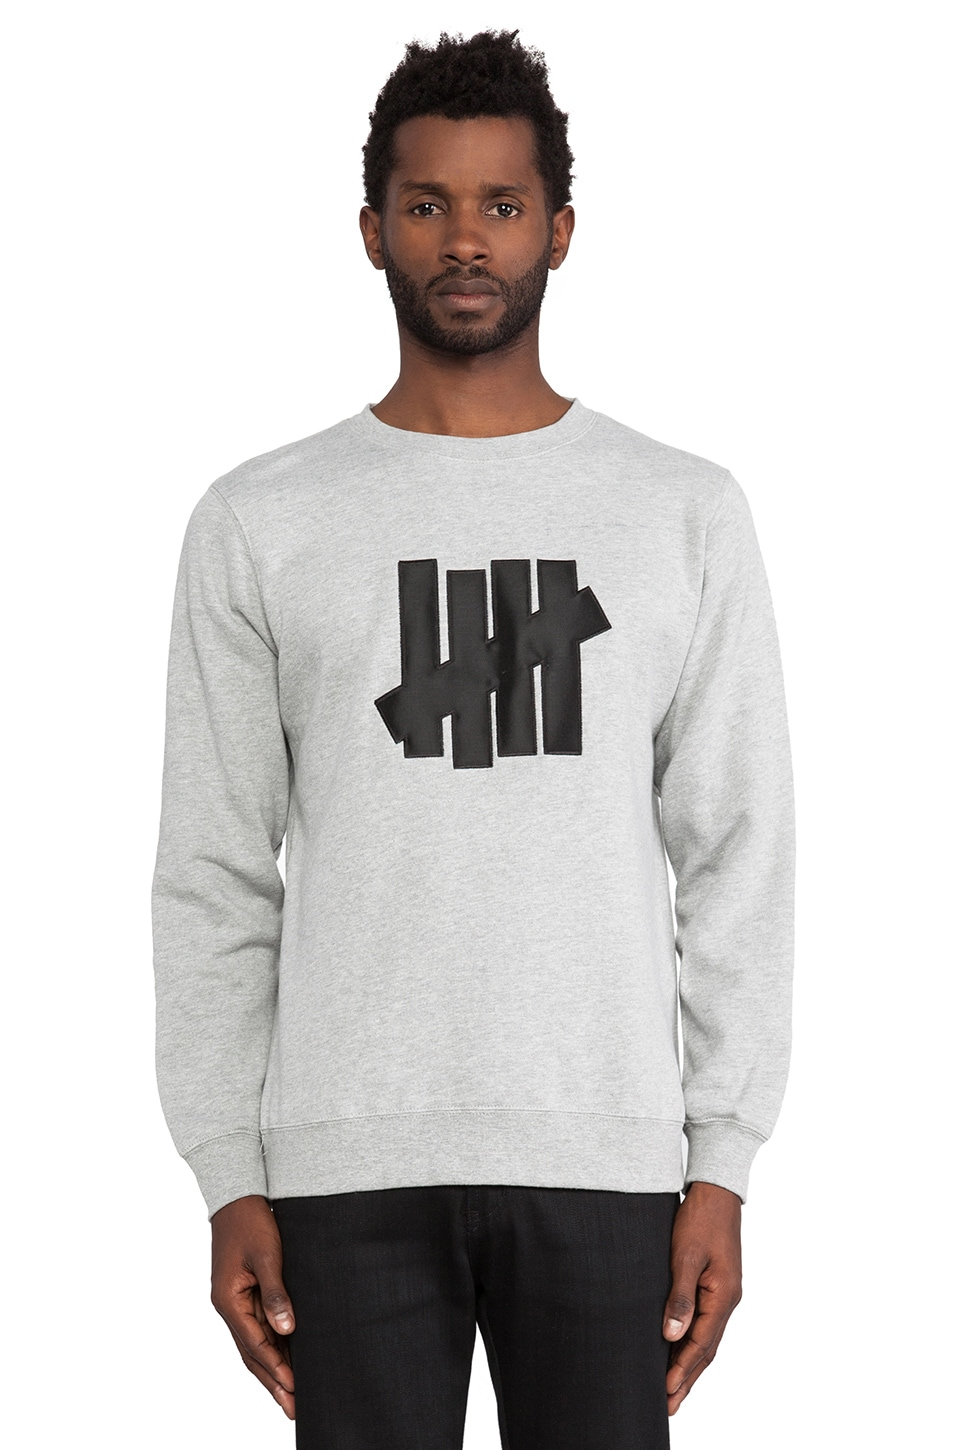 Undefeated 5 Strike Pullover in Grey Heather